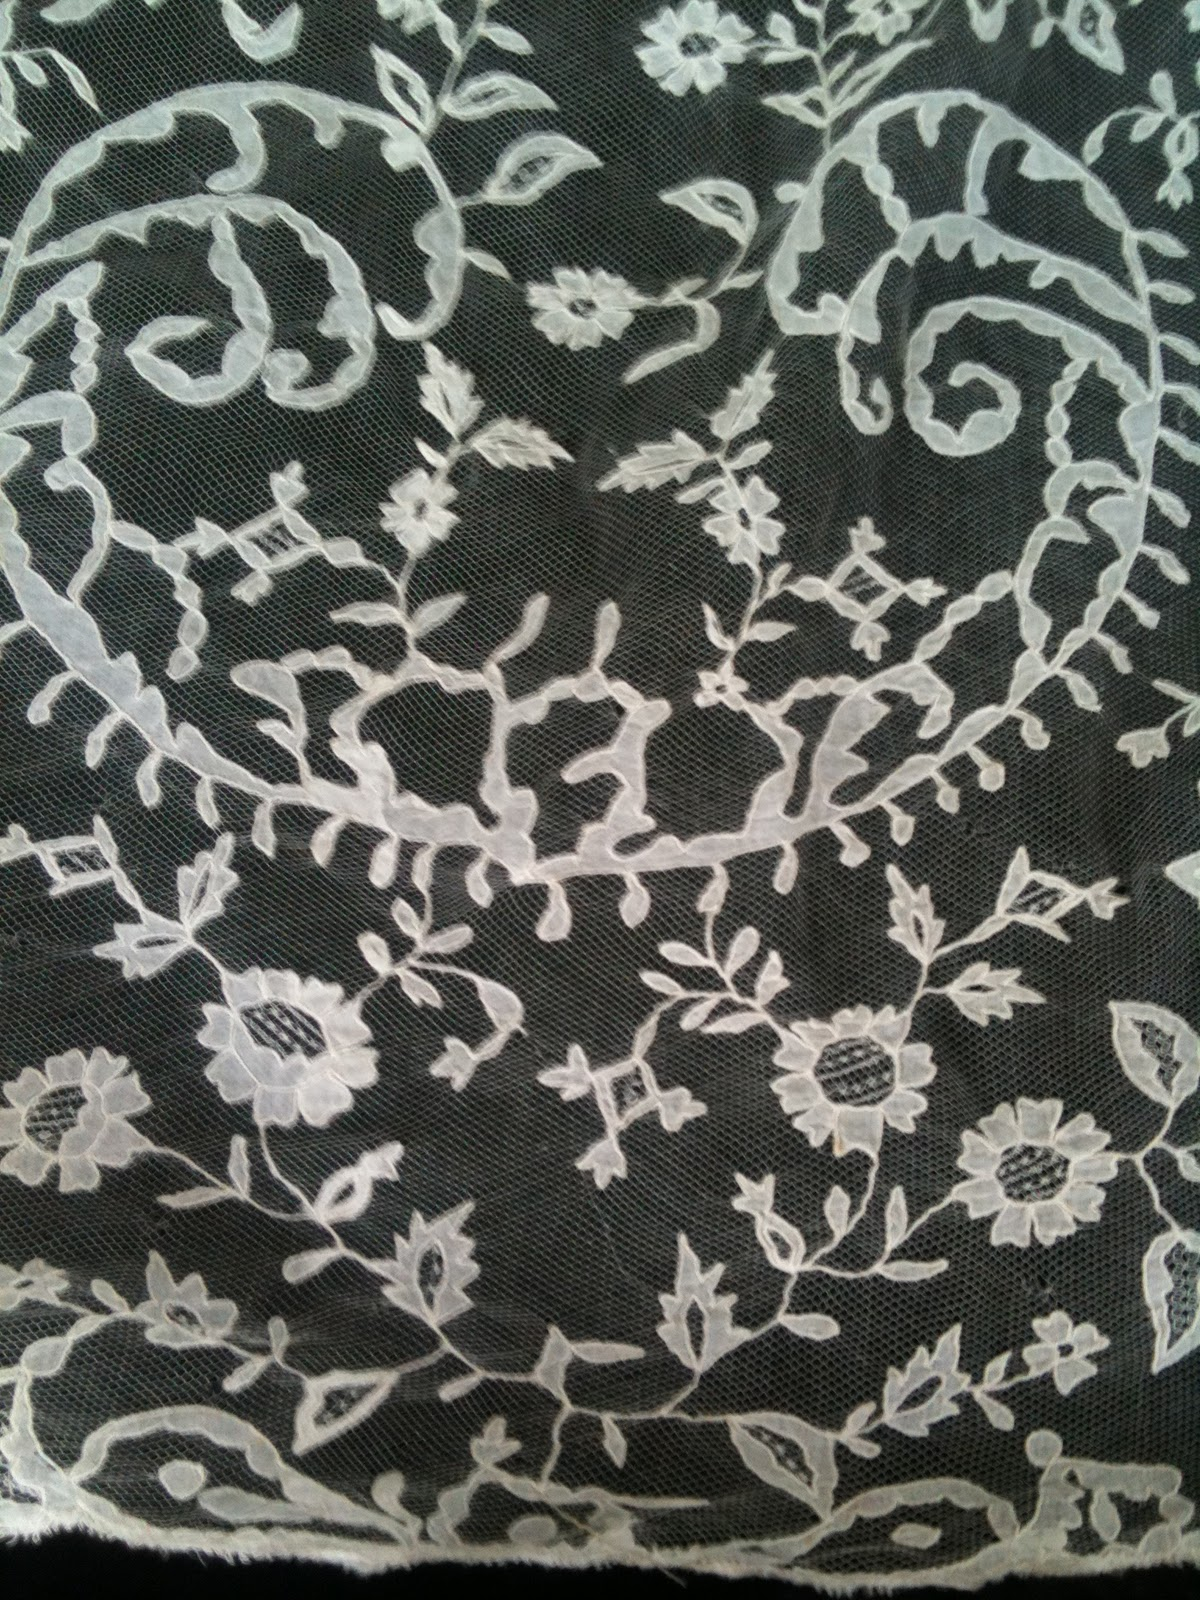 Honiton Lace For Sale Veil f 19th c Honiton Lace